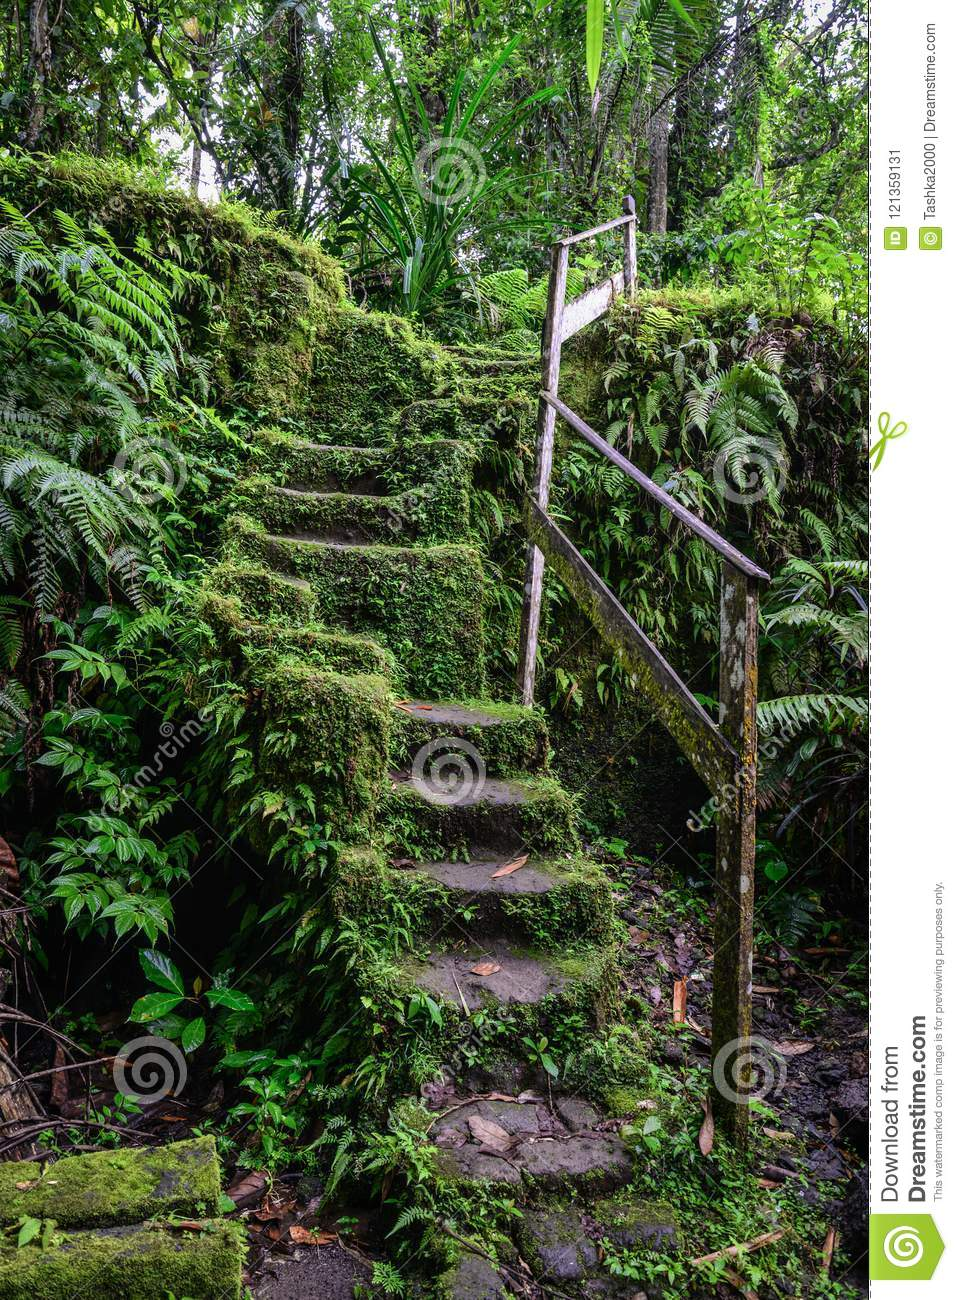 Old stone stairs in overgrown forest garden